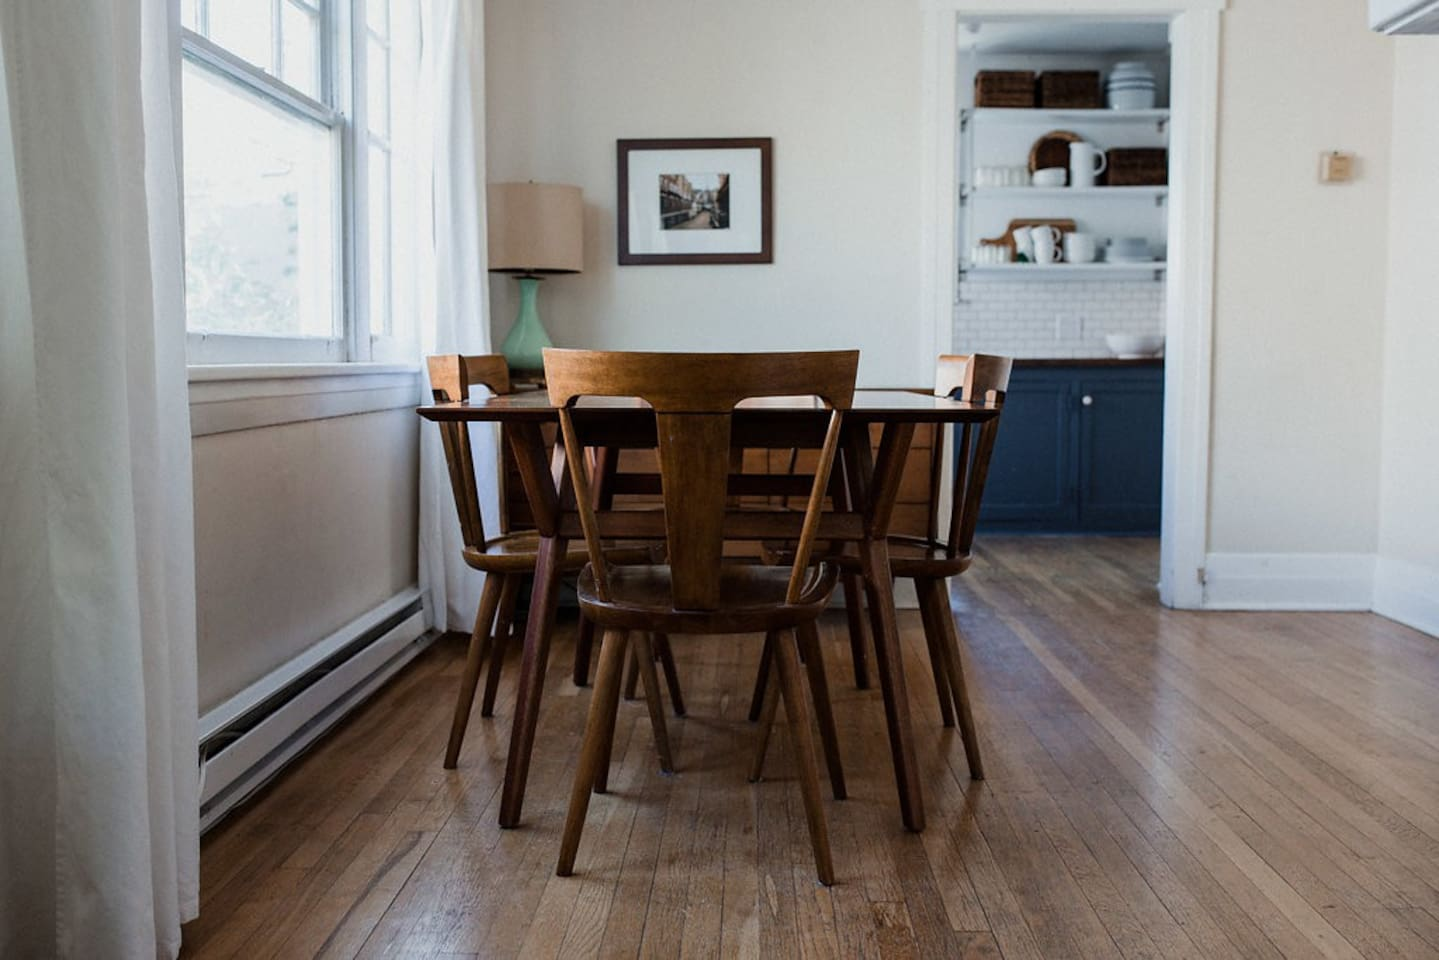 Cottage Blue's decor is a stylish blend of mid-century modern and 1920s sophistication.